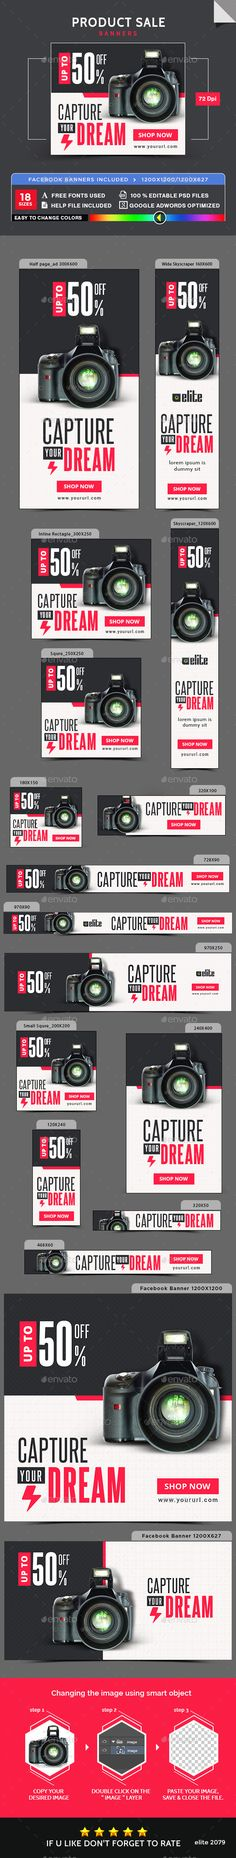 Product Sale Banners Template PSD #ads #promotion